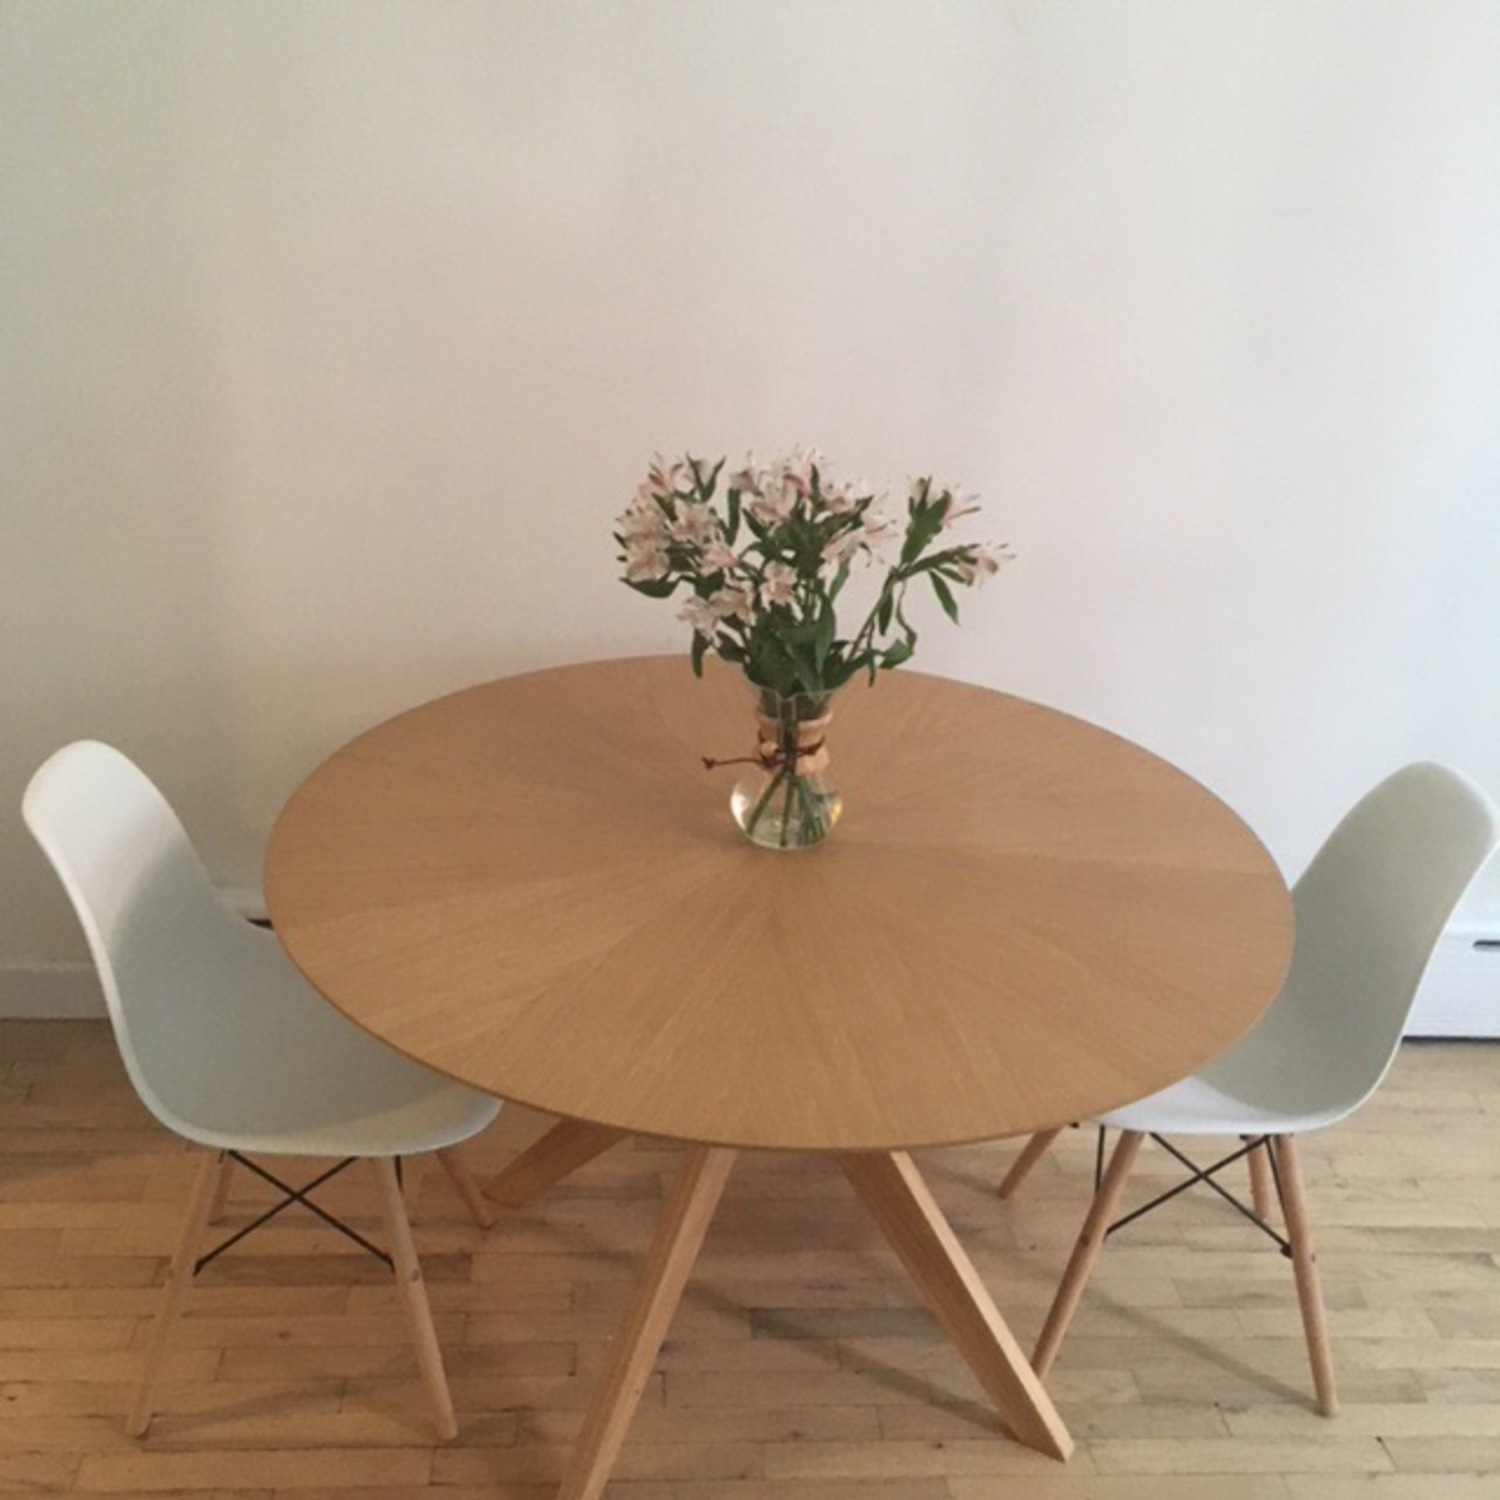 Scandinavian Stlye Dining Table and Chairs - image-7